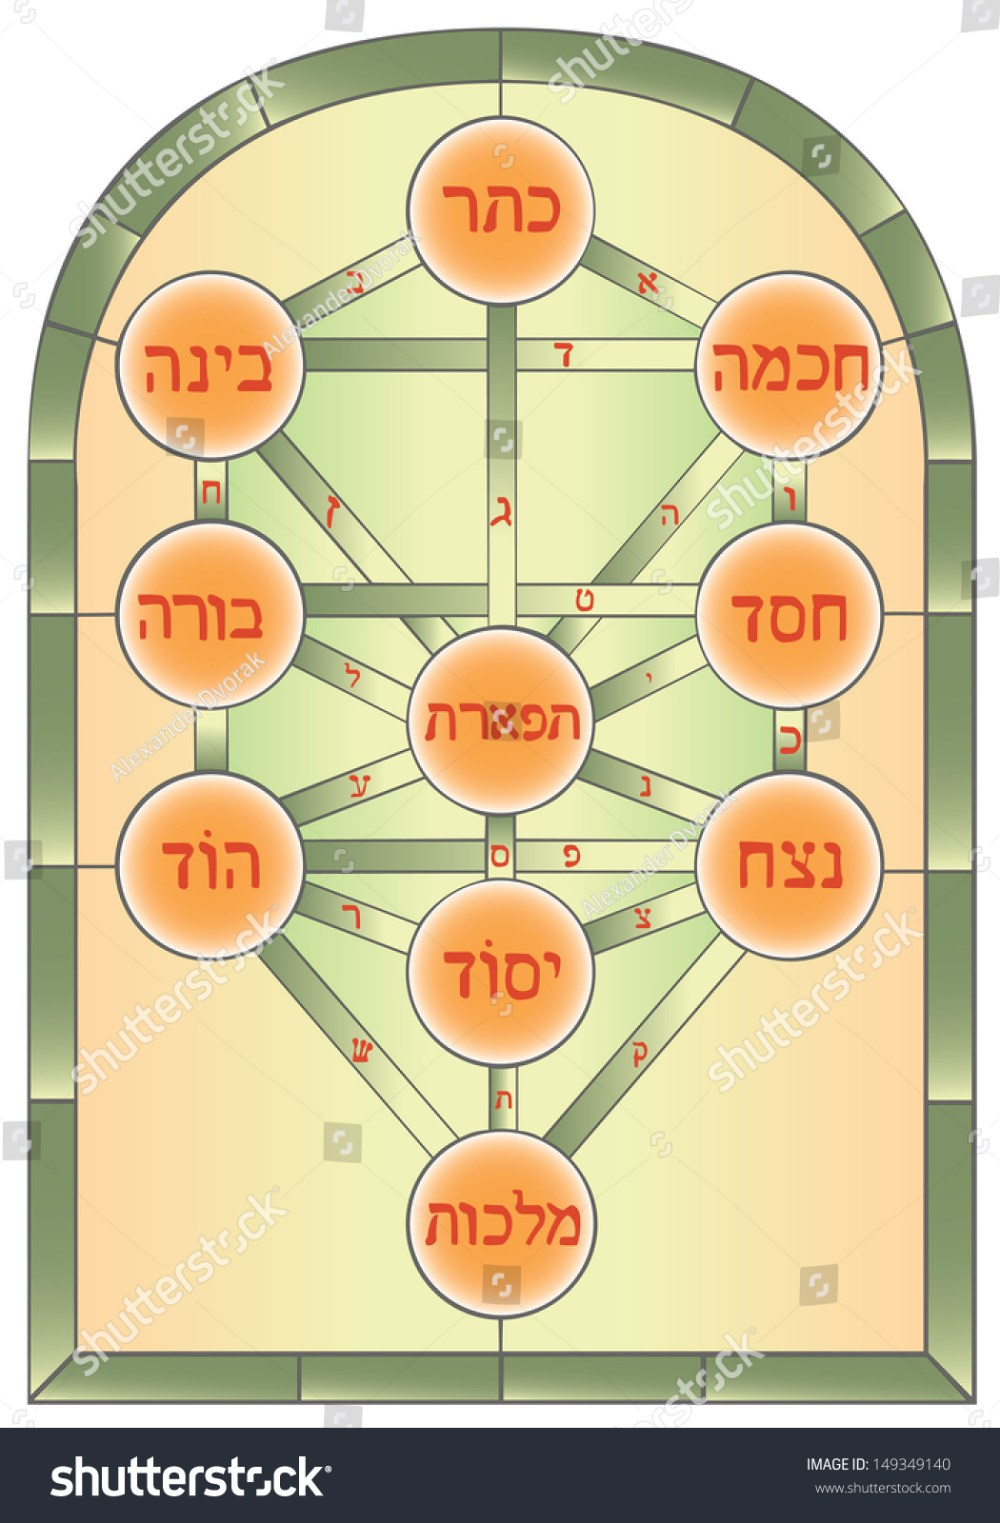 medium resolution of the tree of life mystical symbol used in the kabbalah of esoteric judaism